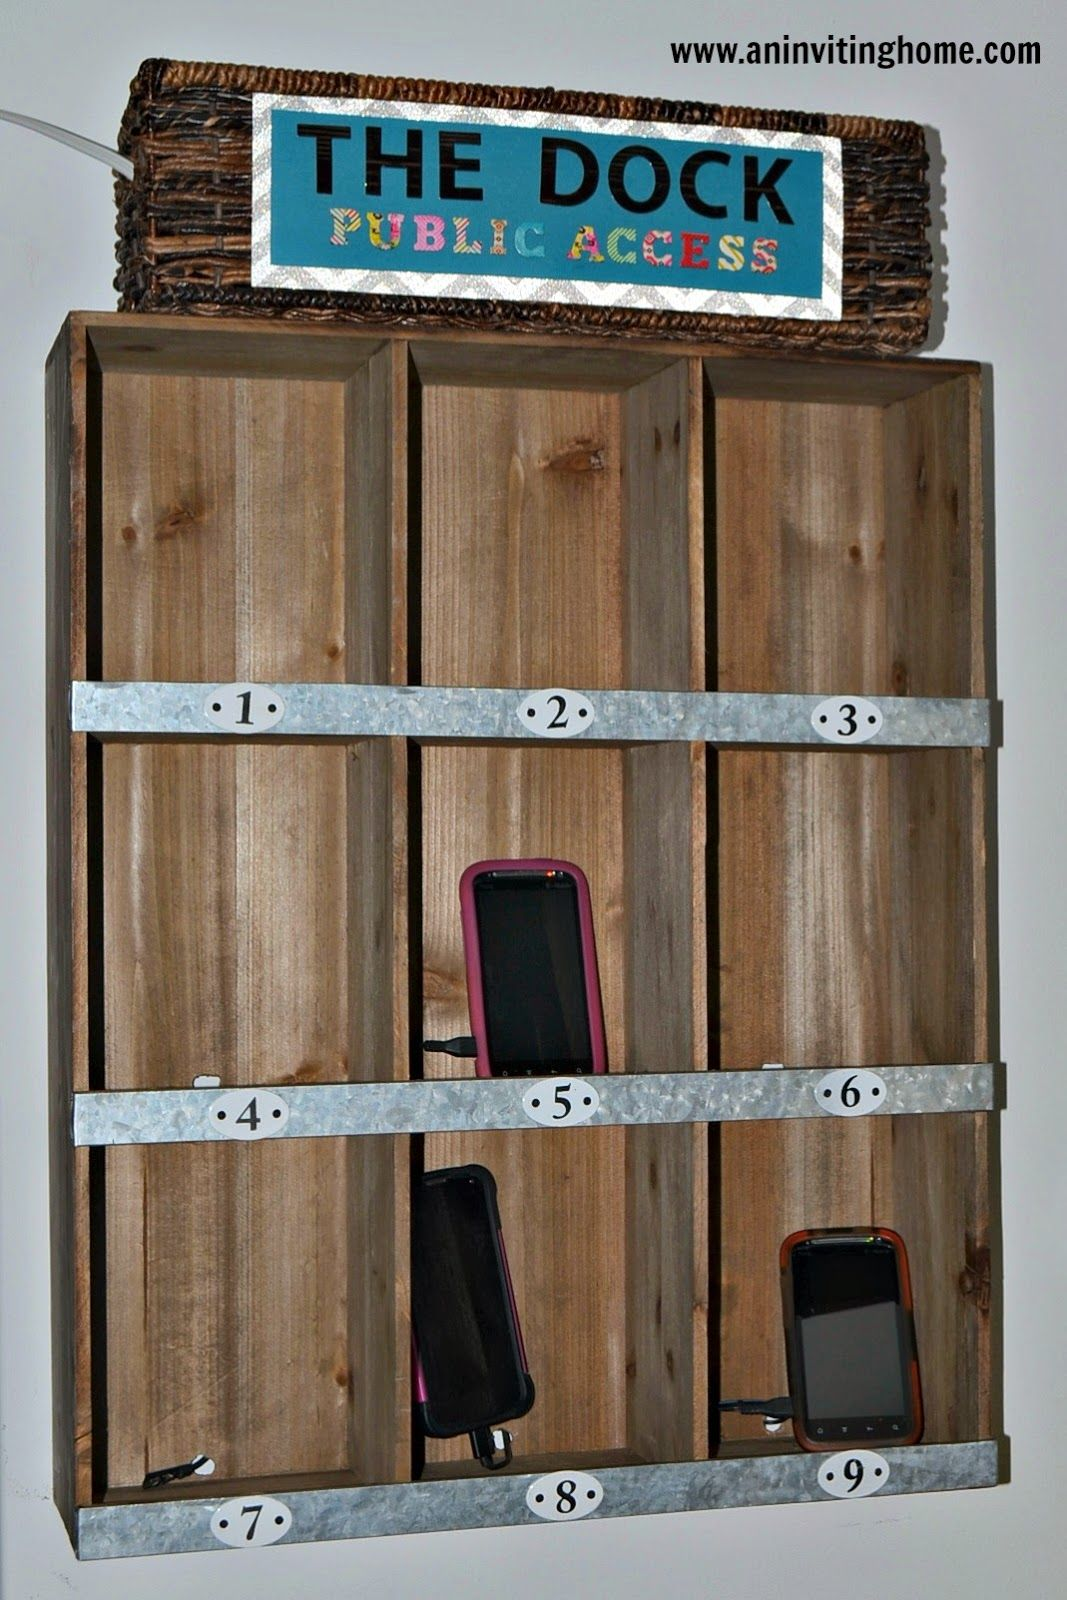 Dock Furniture Ideas 27 Diy Charging Station Ideas To Make More Tidy Cables